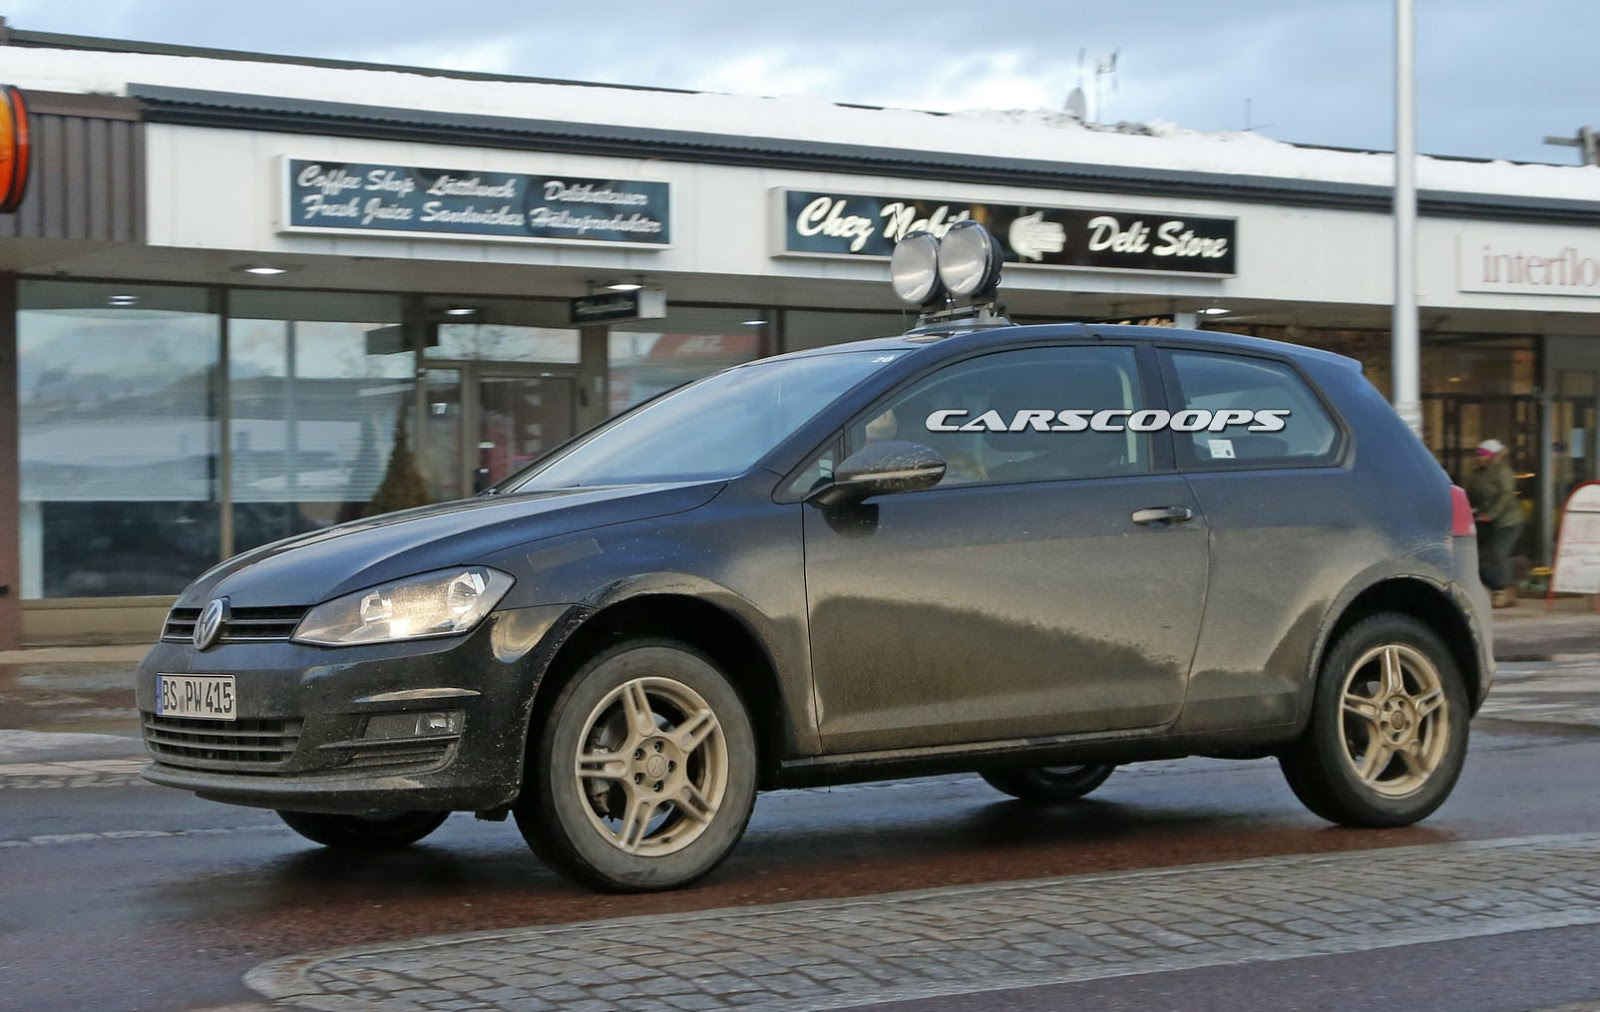 2018 vw polo based suv mule spotted out in the wild carscoops. Black Bedroom Furniture Sets. Home Design Ideas